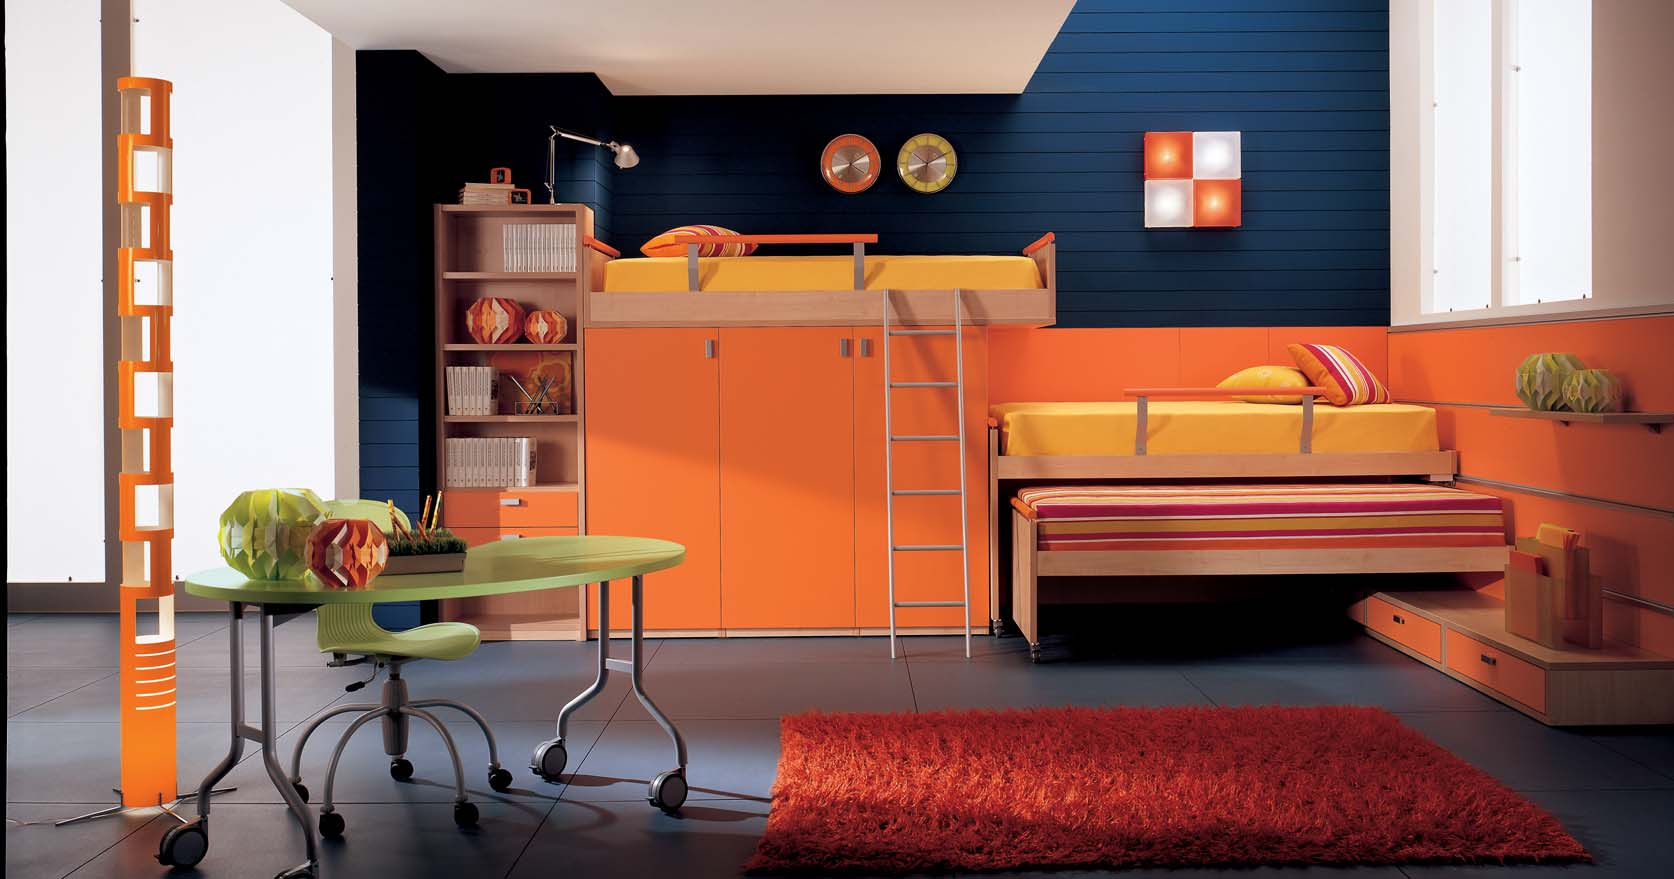 Kids bedroom interior design - Bedroom for girl interior design ...